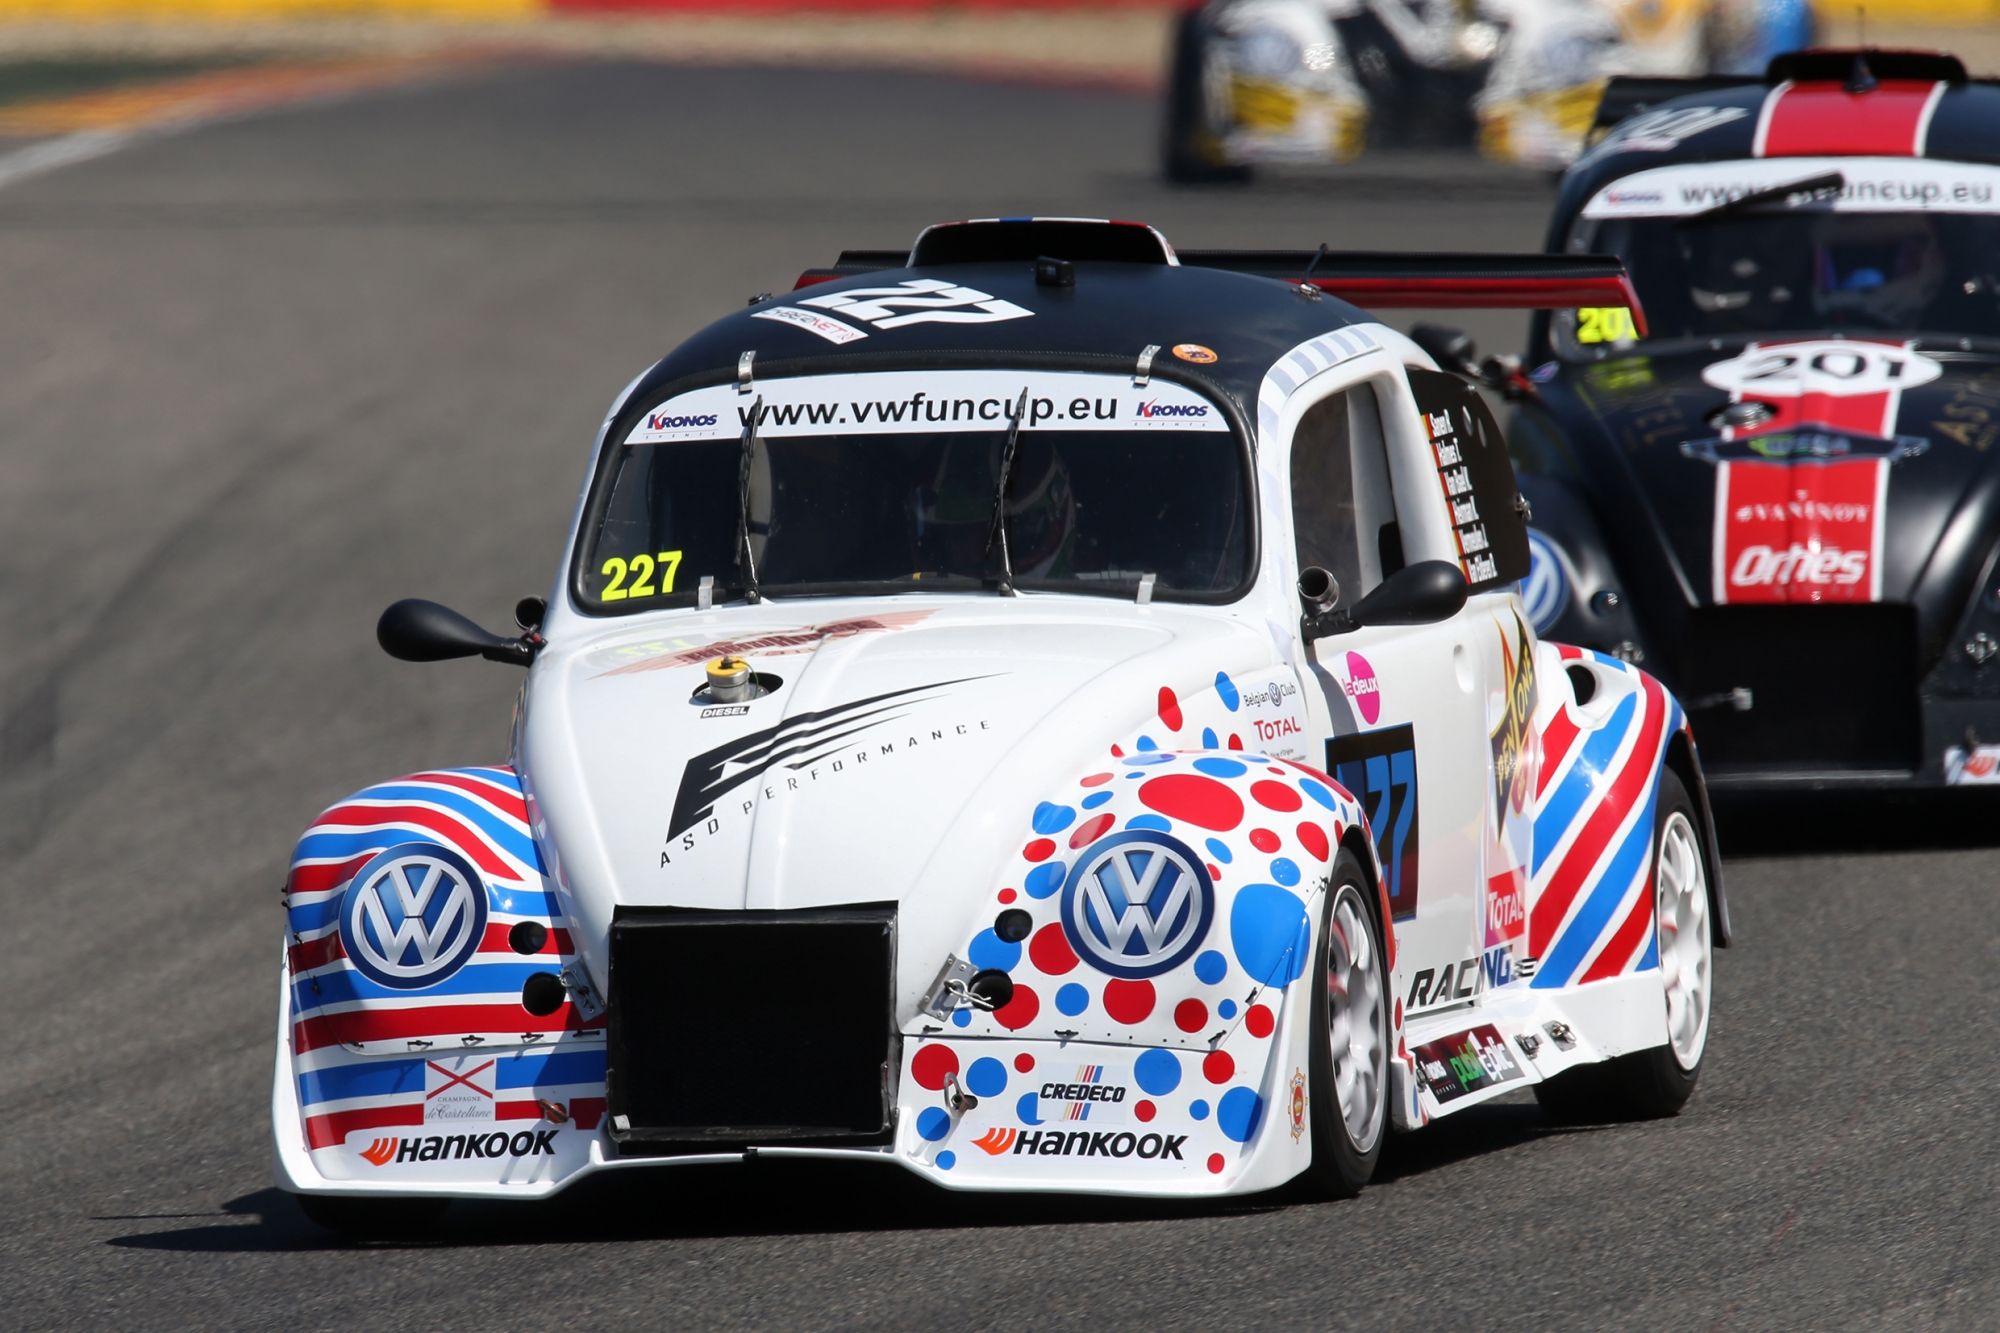 image 1 - JUSI Racing engagé en Evo2 aux 25 Hours VW Fun Cup